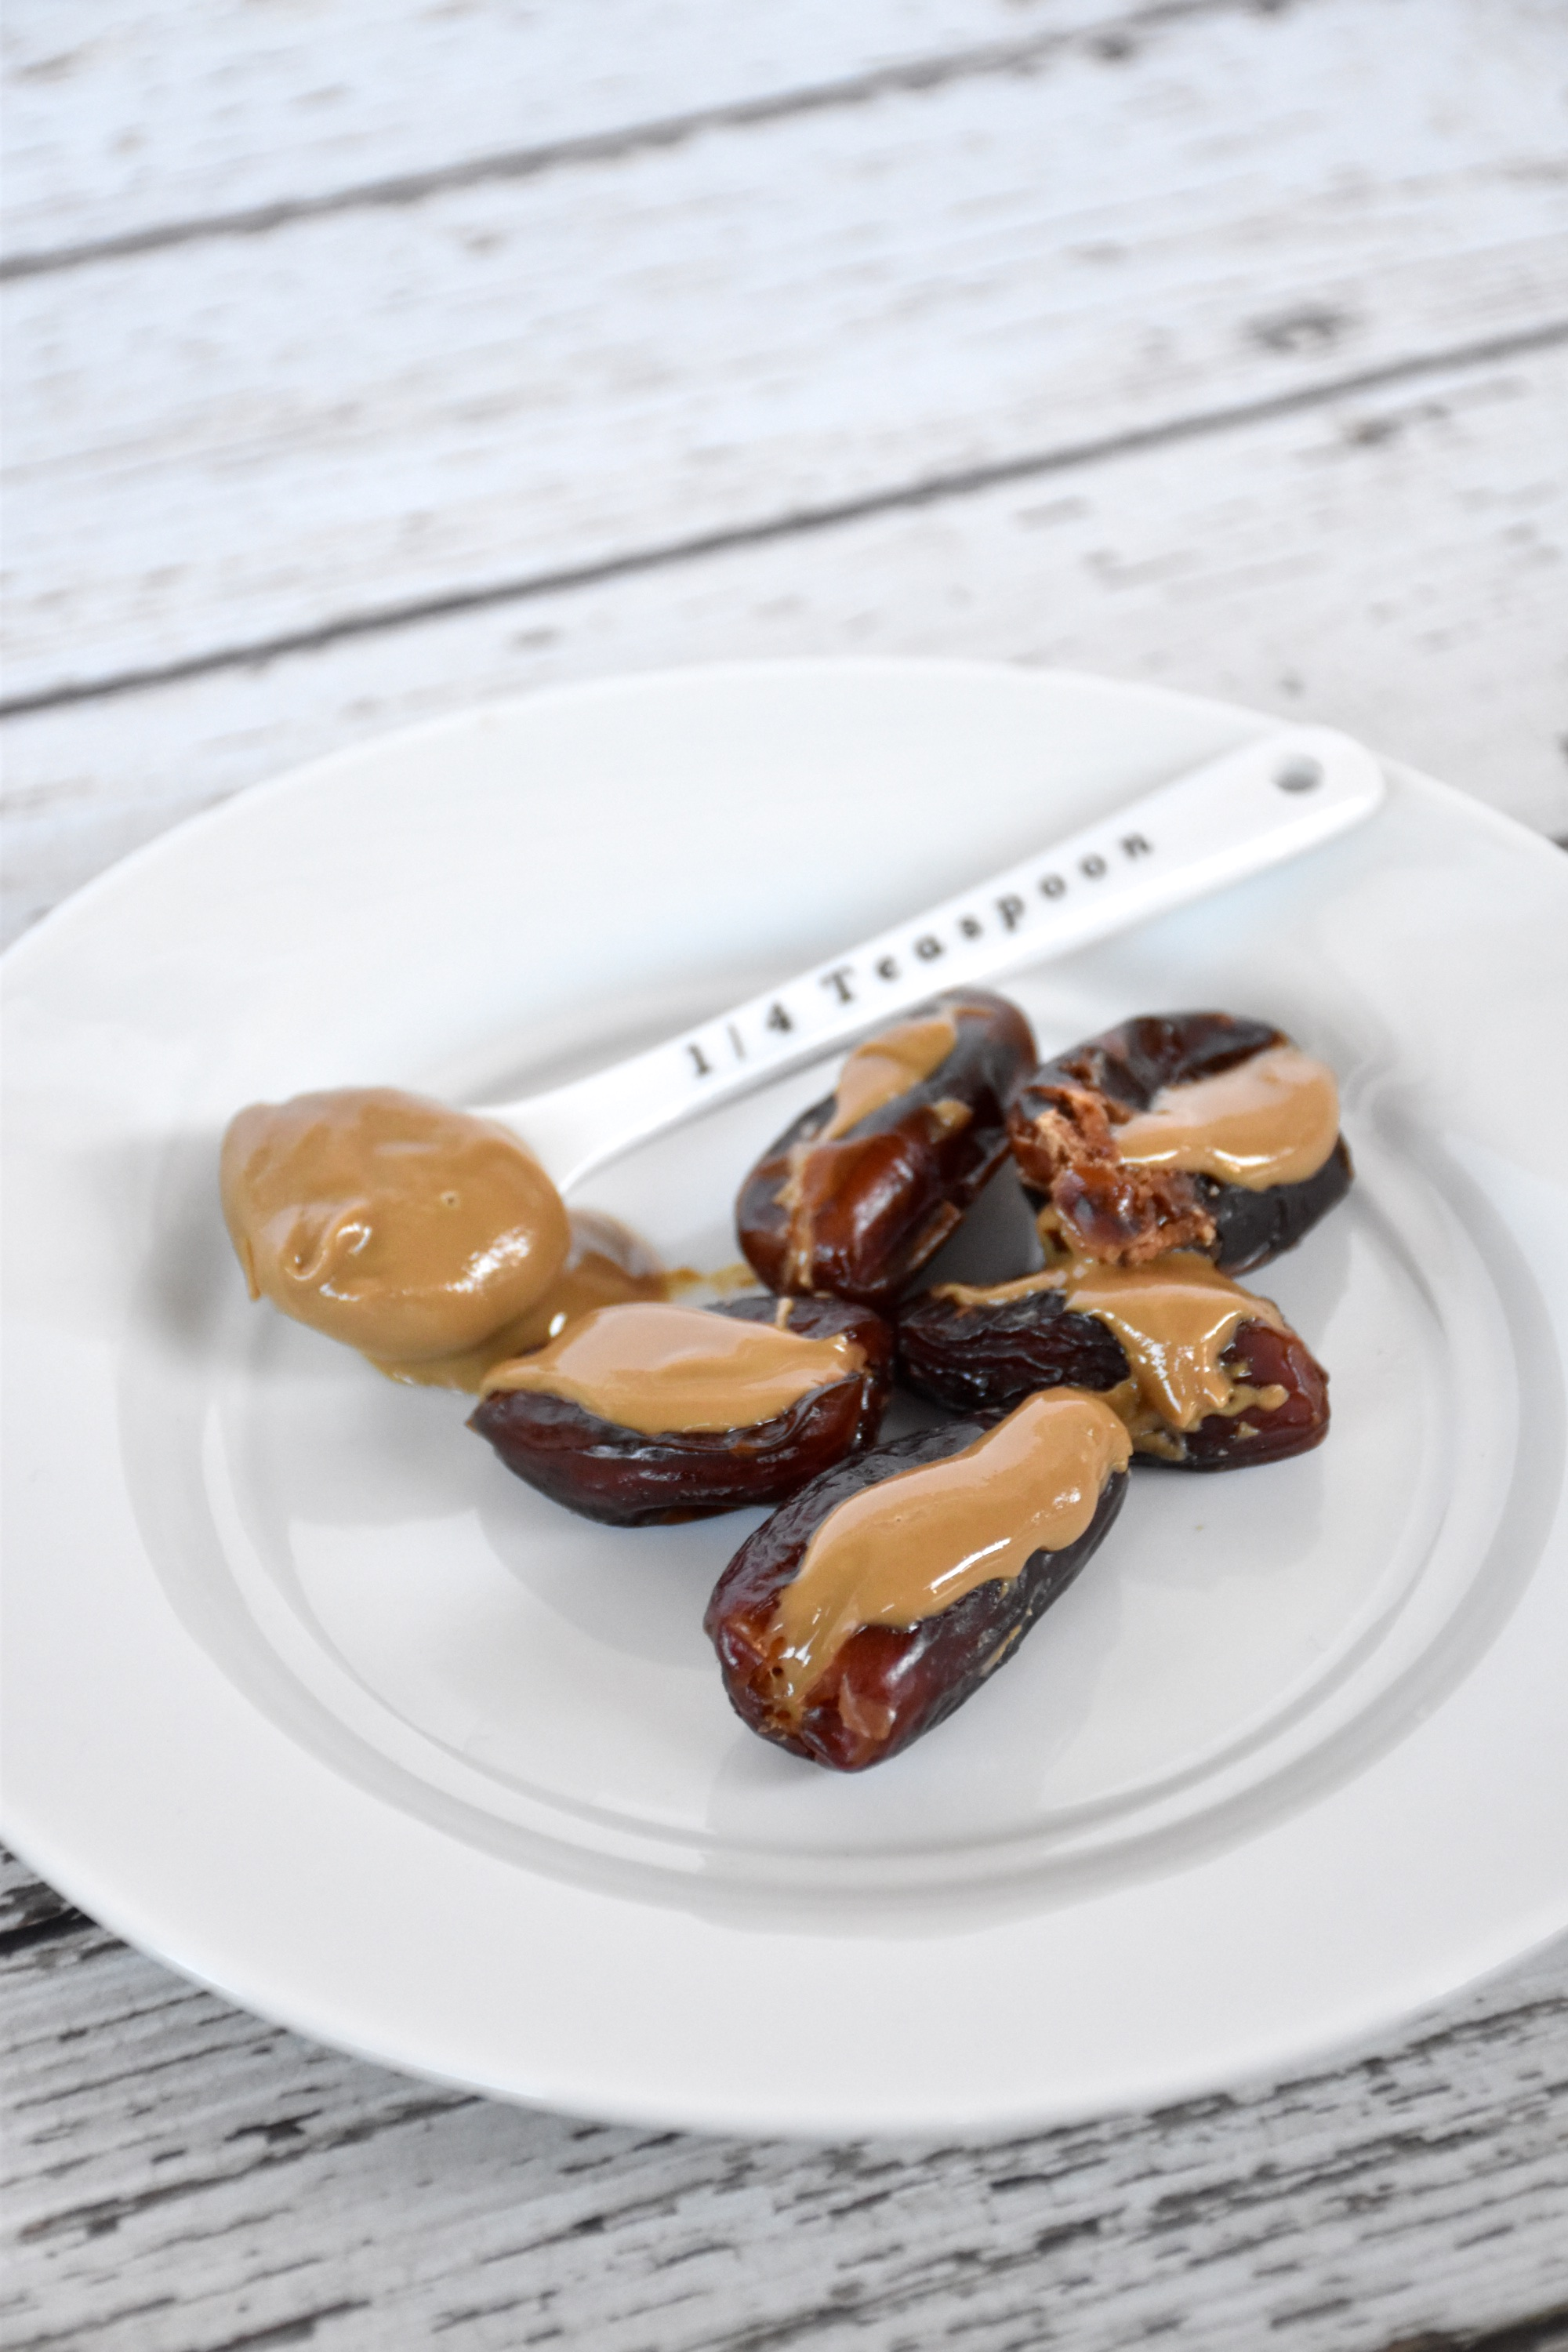 Nut butter stuffed dates, an excellent gluten-free dairy-free snack